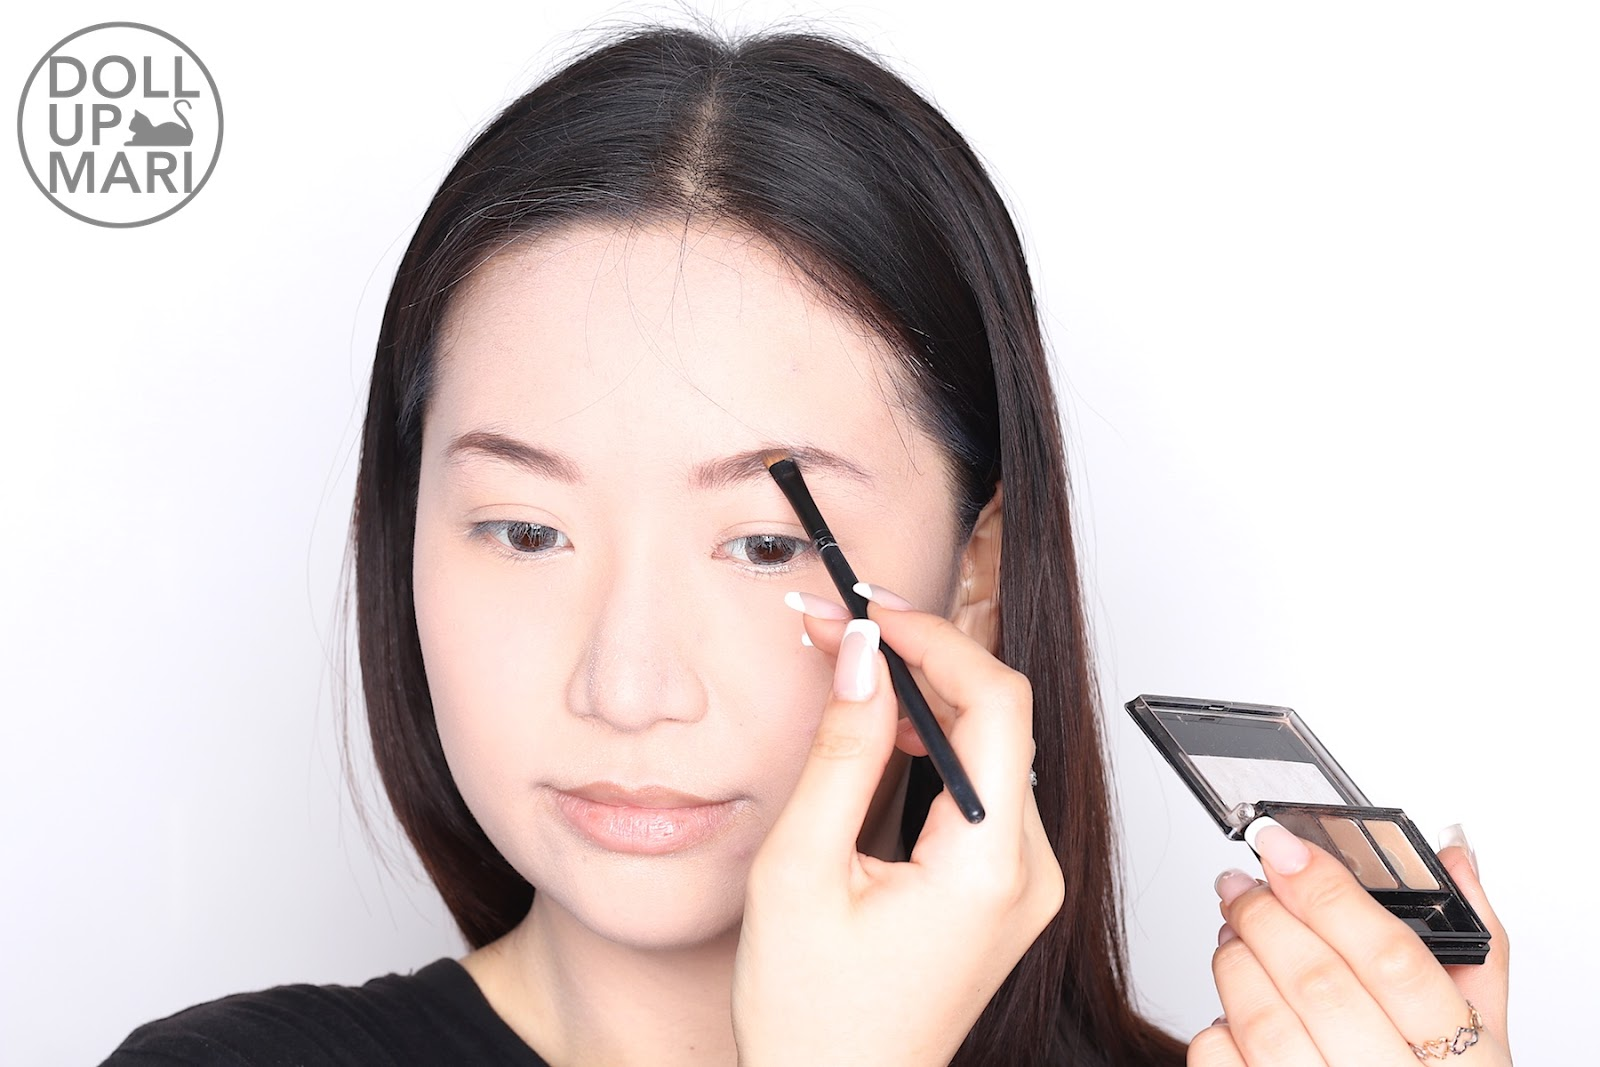 e0aab6c0bc3 After Applying Maybelline Fashion Brow Palette (Dark Brown) On Eyebrows